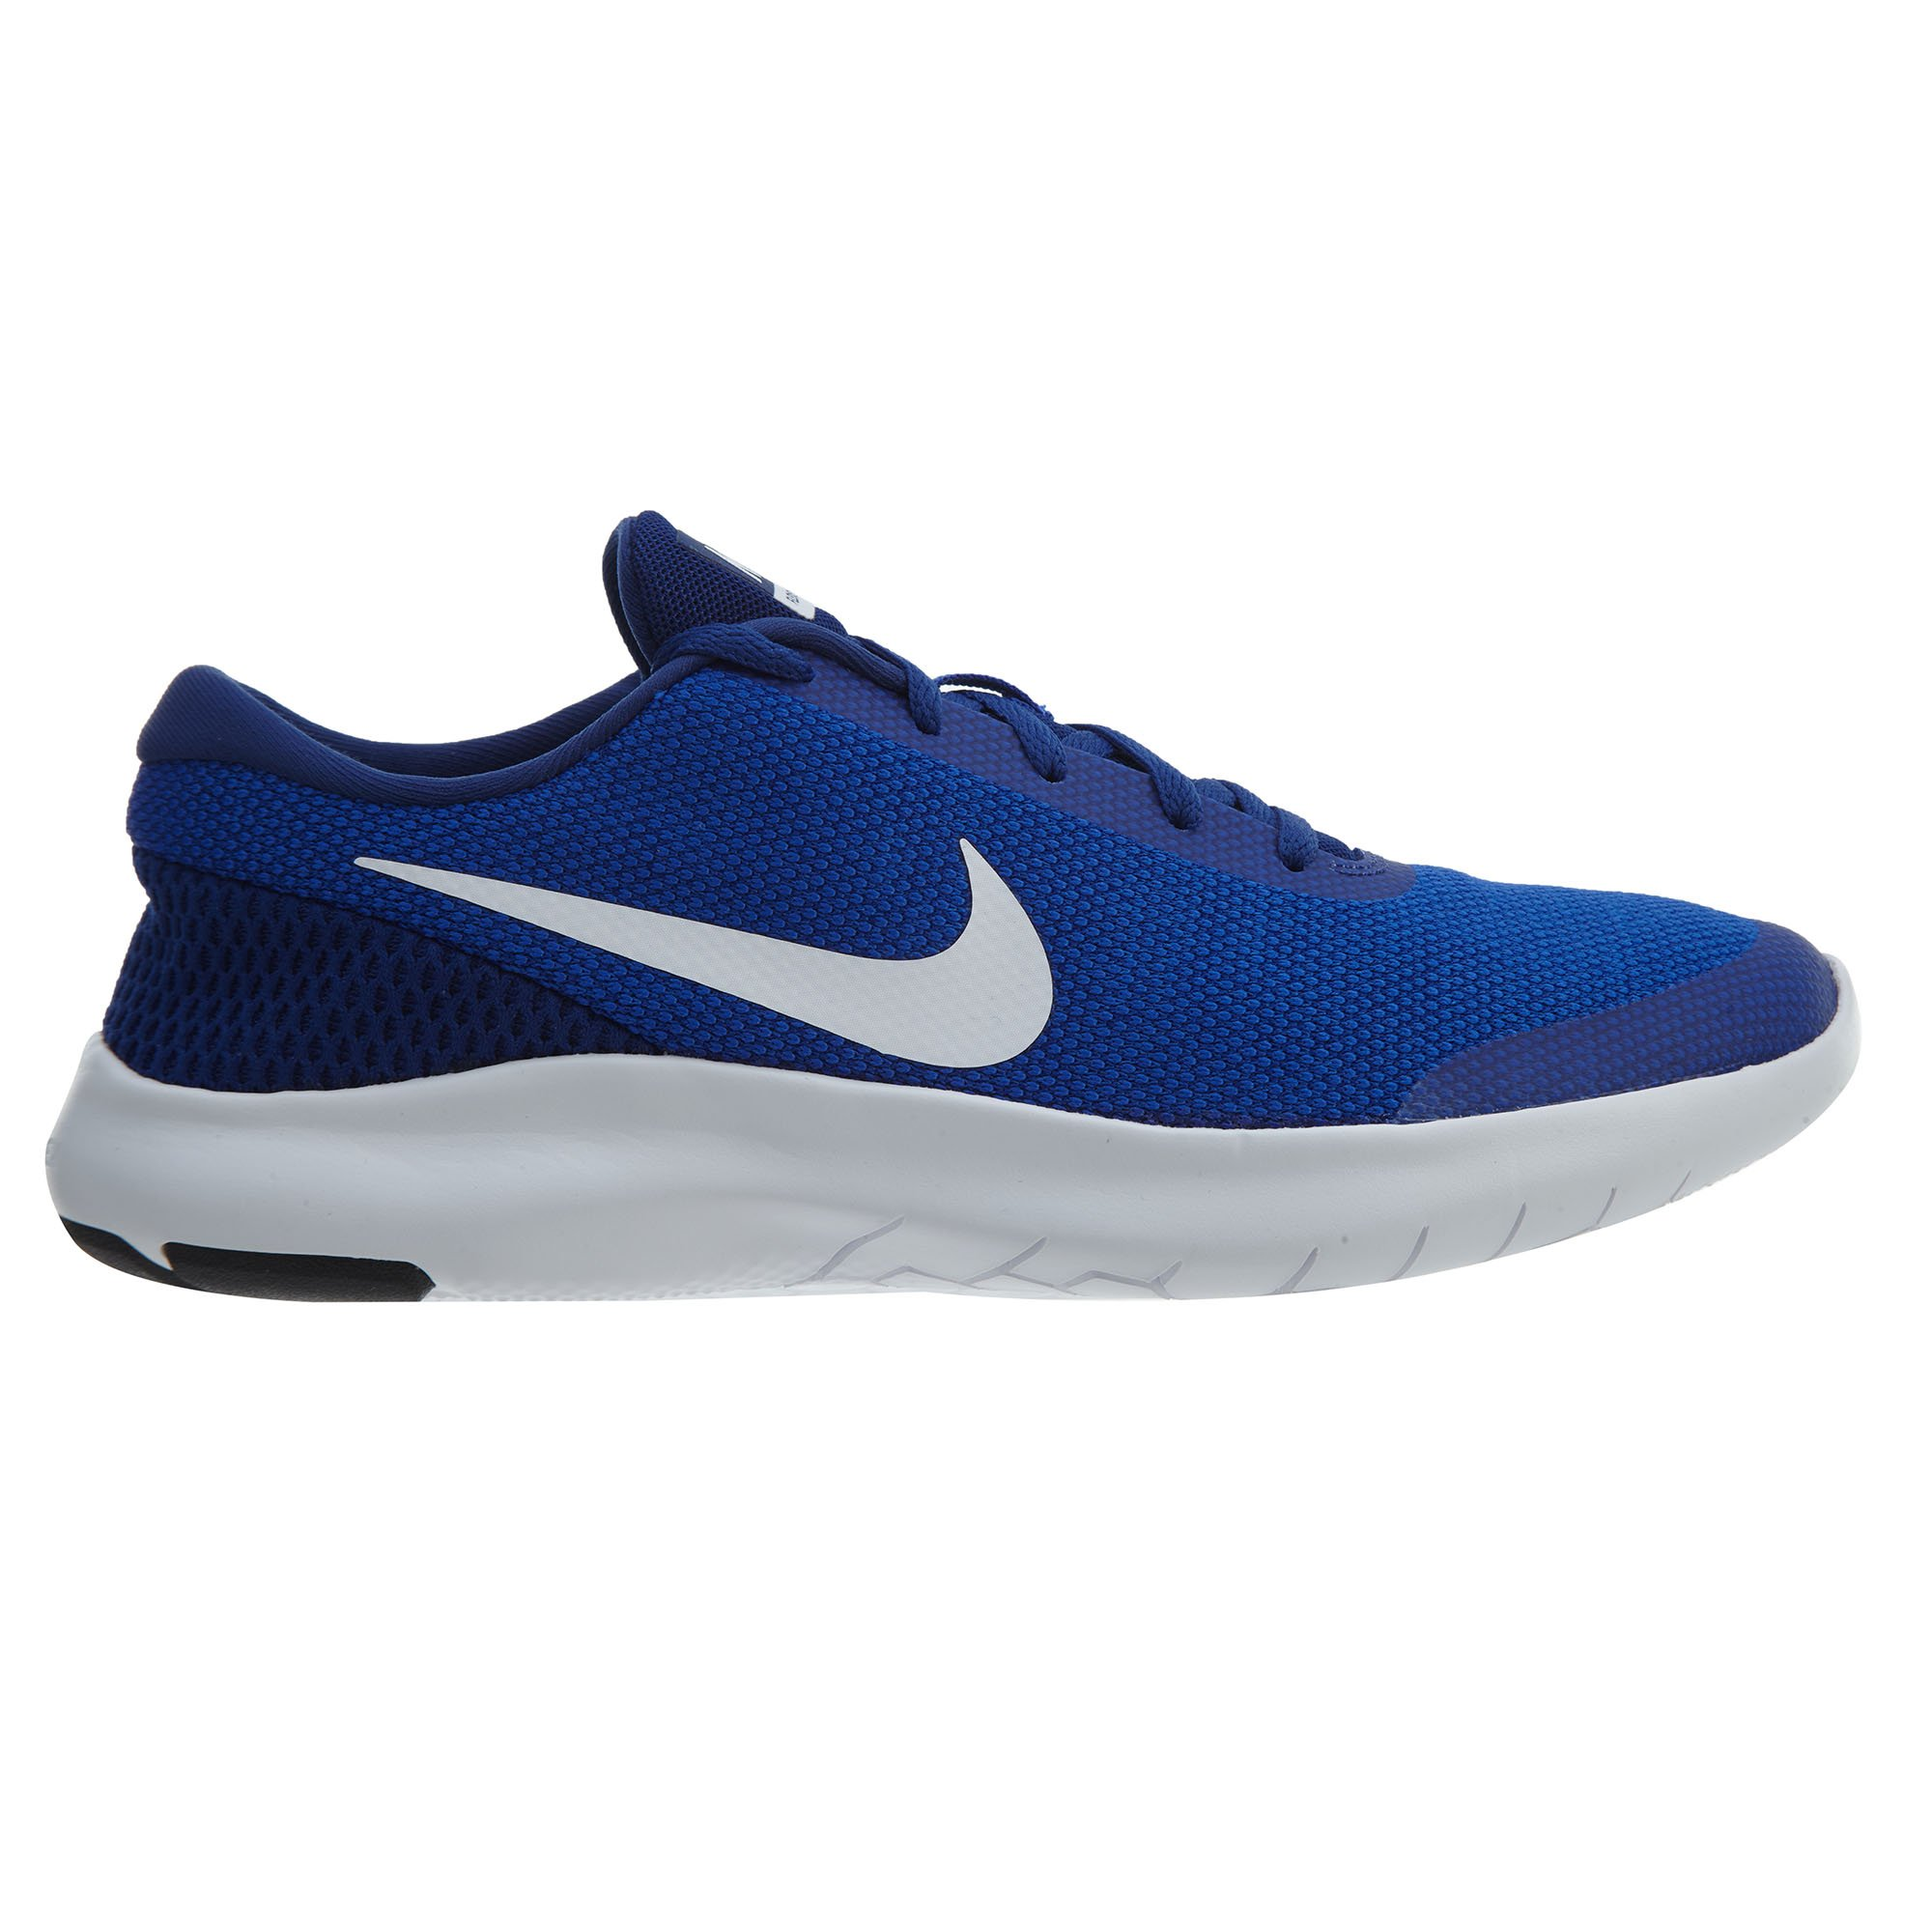 4cda2849f0ed Nike Flex Experience Rn 7 Grey Running Shoes for Men online in India ...